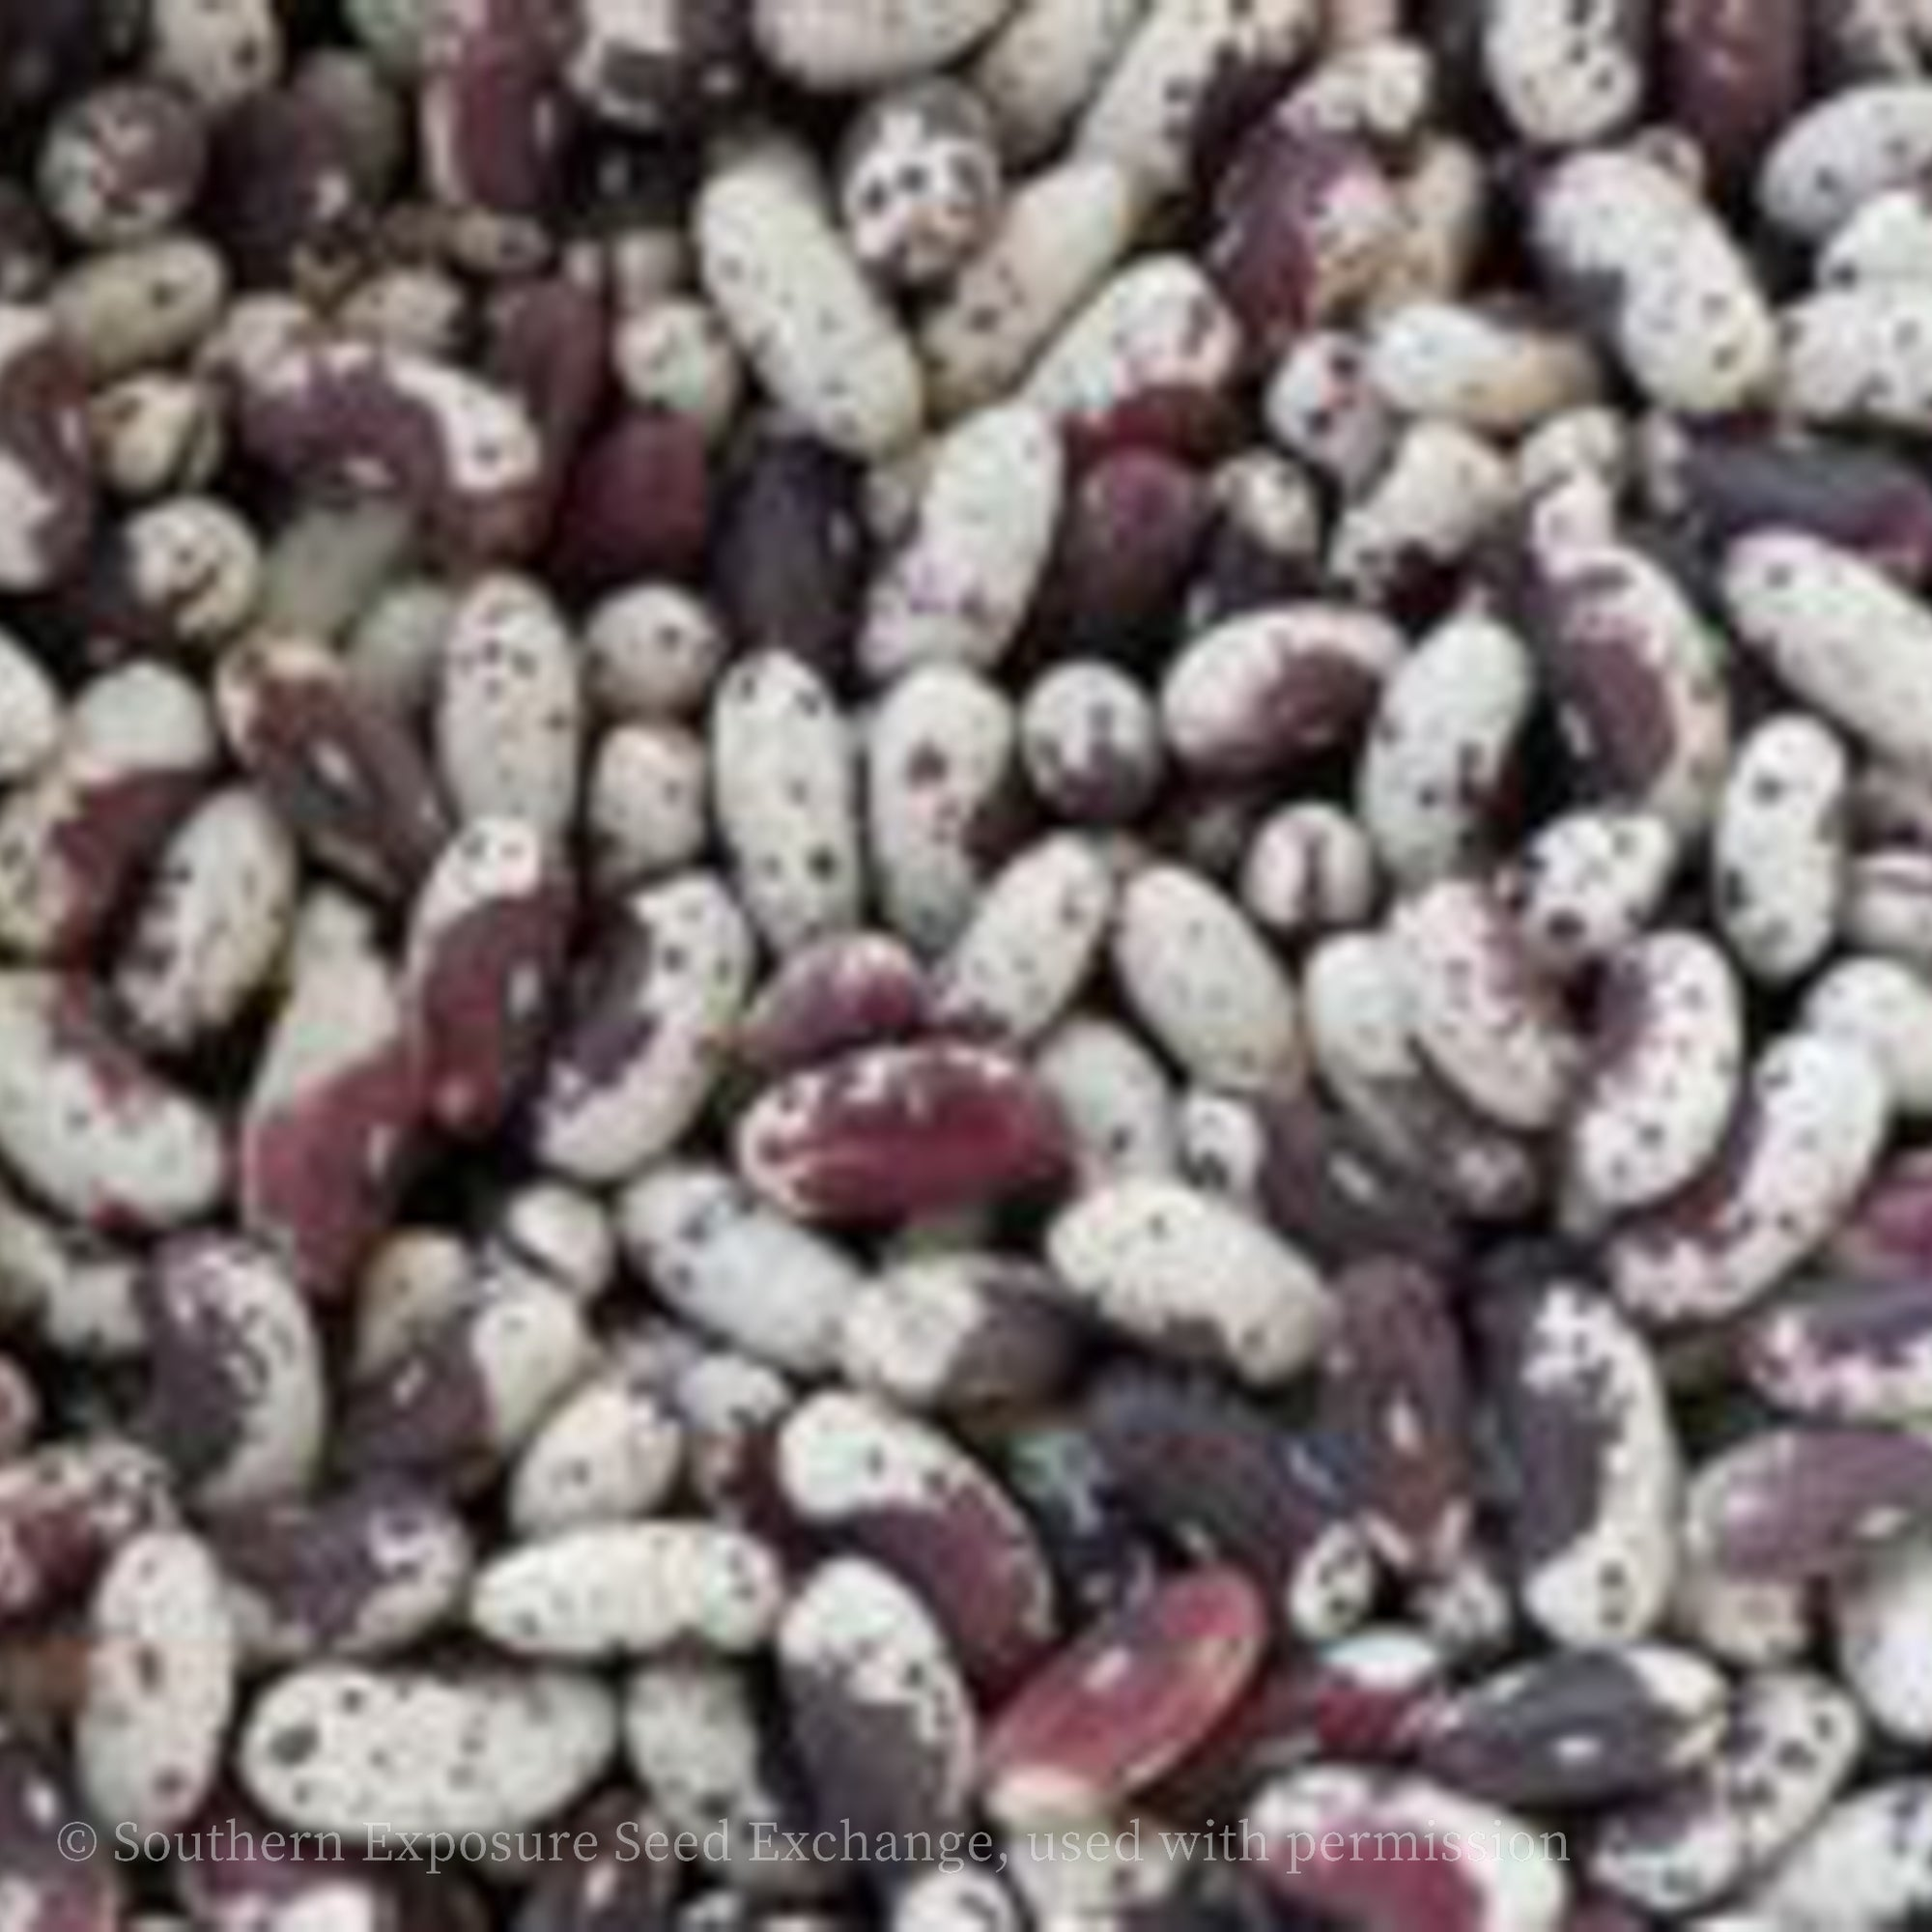 Jacob's Cattle Bean